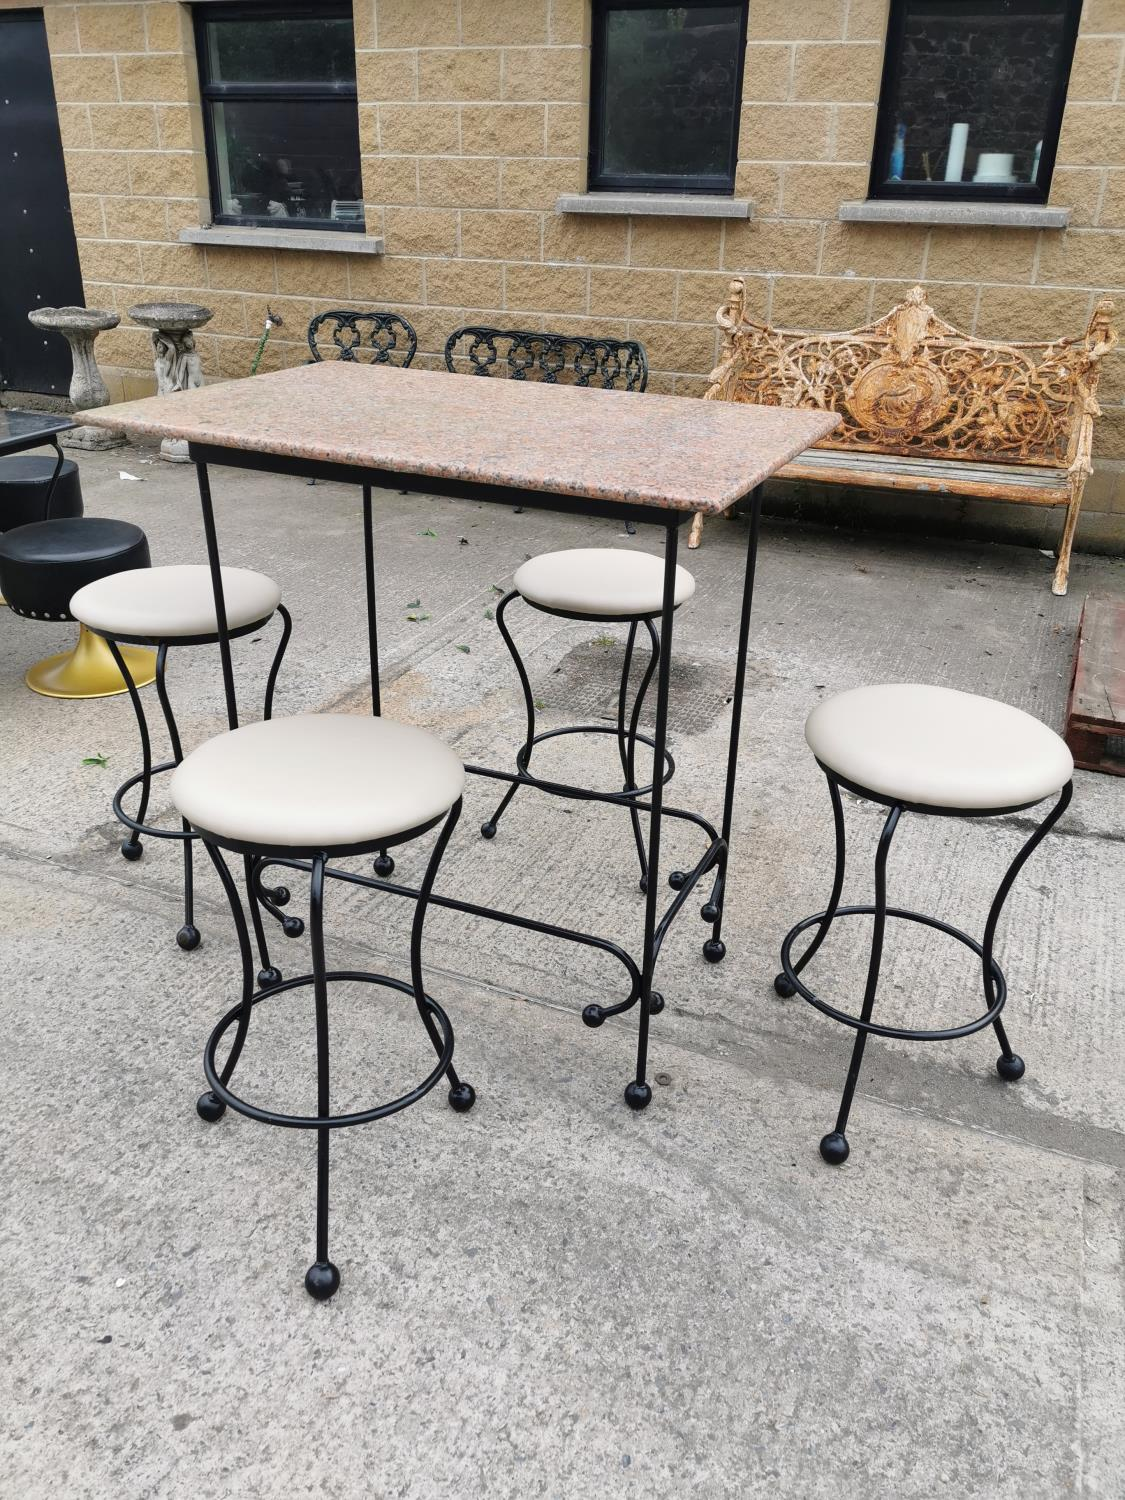 Wrought iron high garden table and four stools. - Image 2 of 3